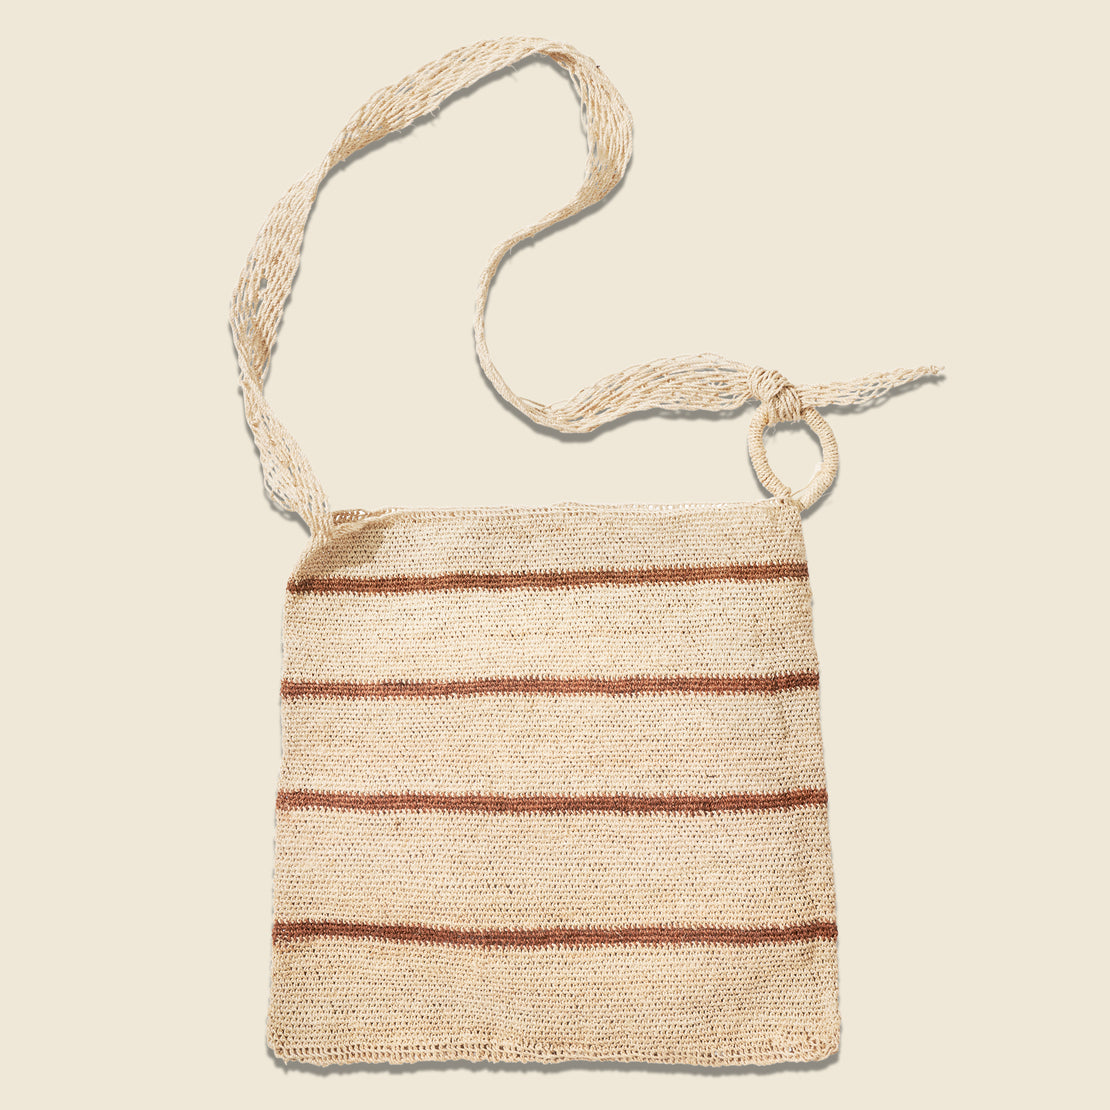 House of LAND Maguey Bag - Woven Stripe